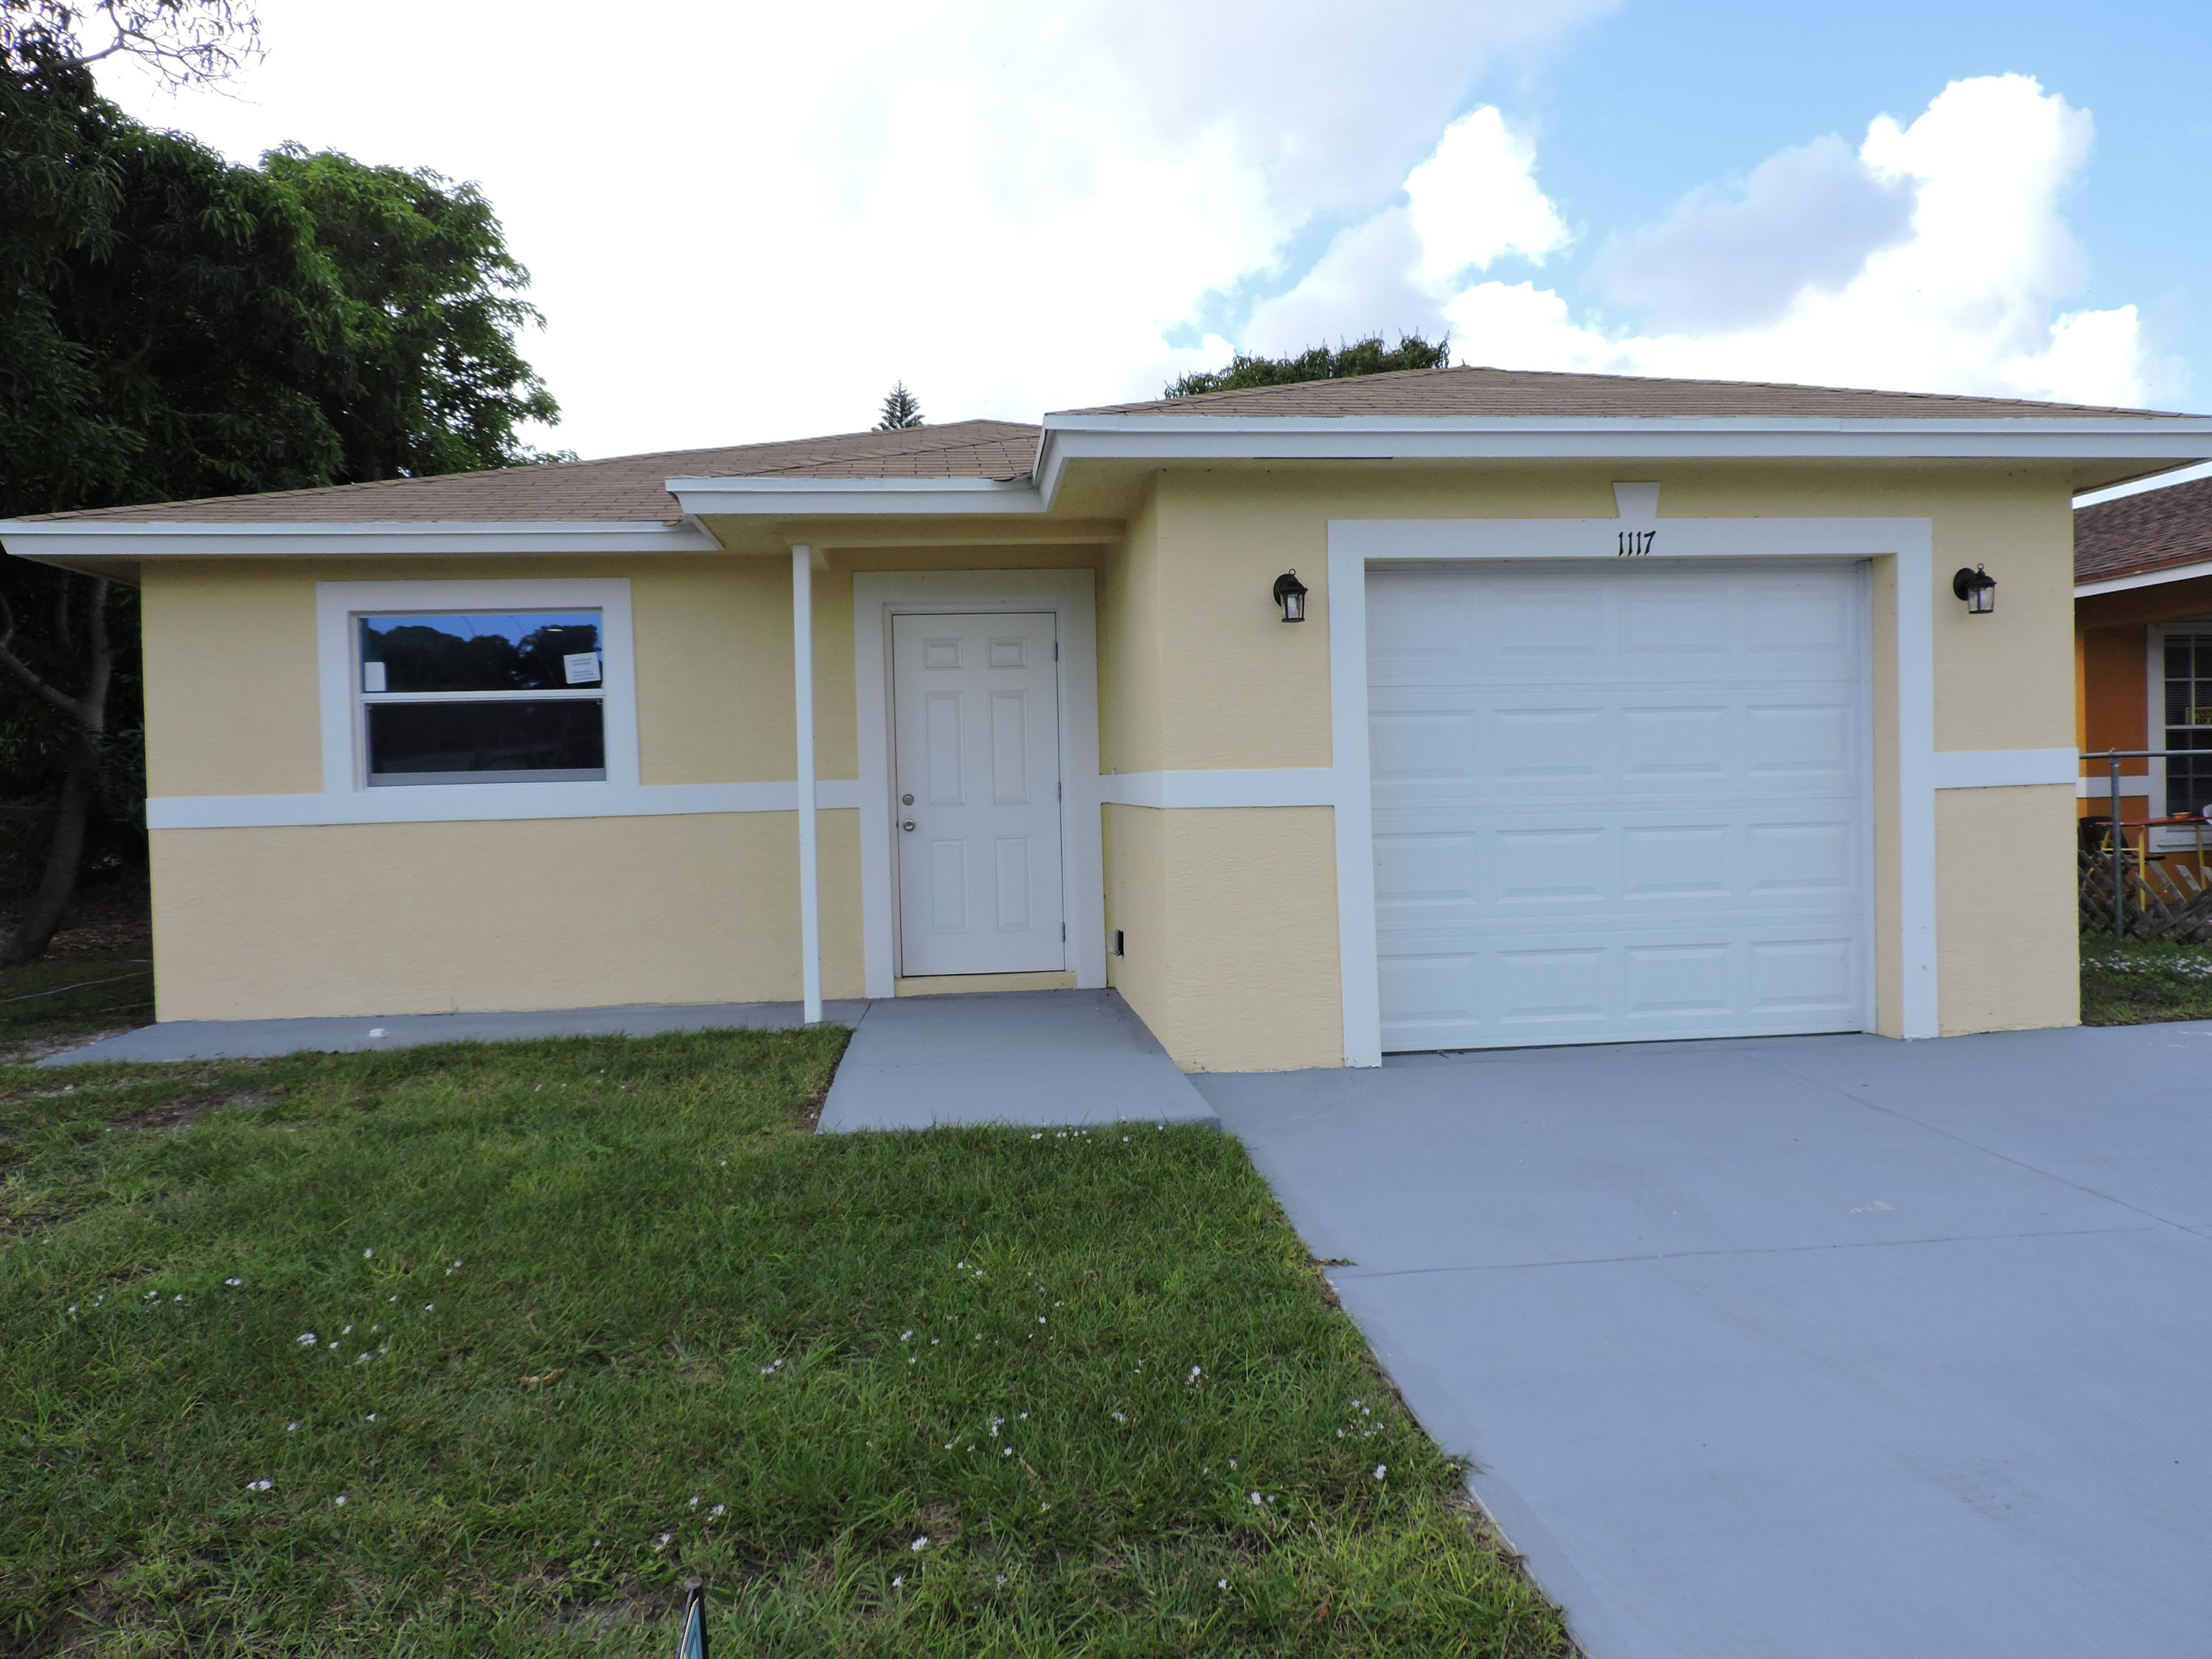 Home for sale in lake ave add to wpb West Palm Beach Florida